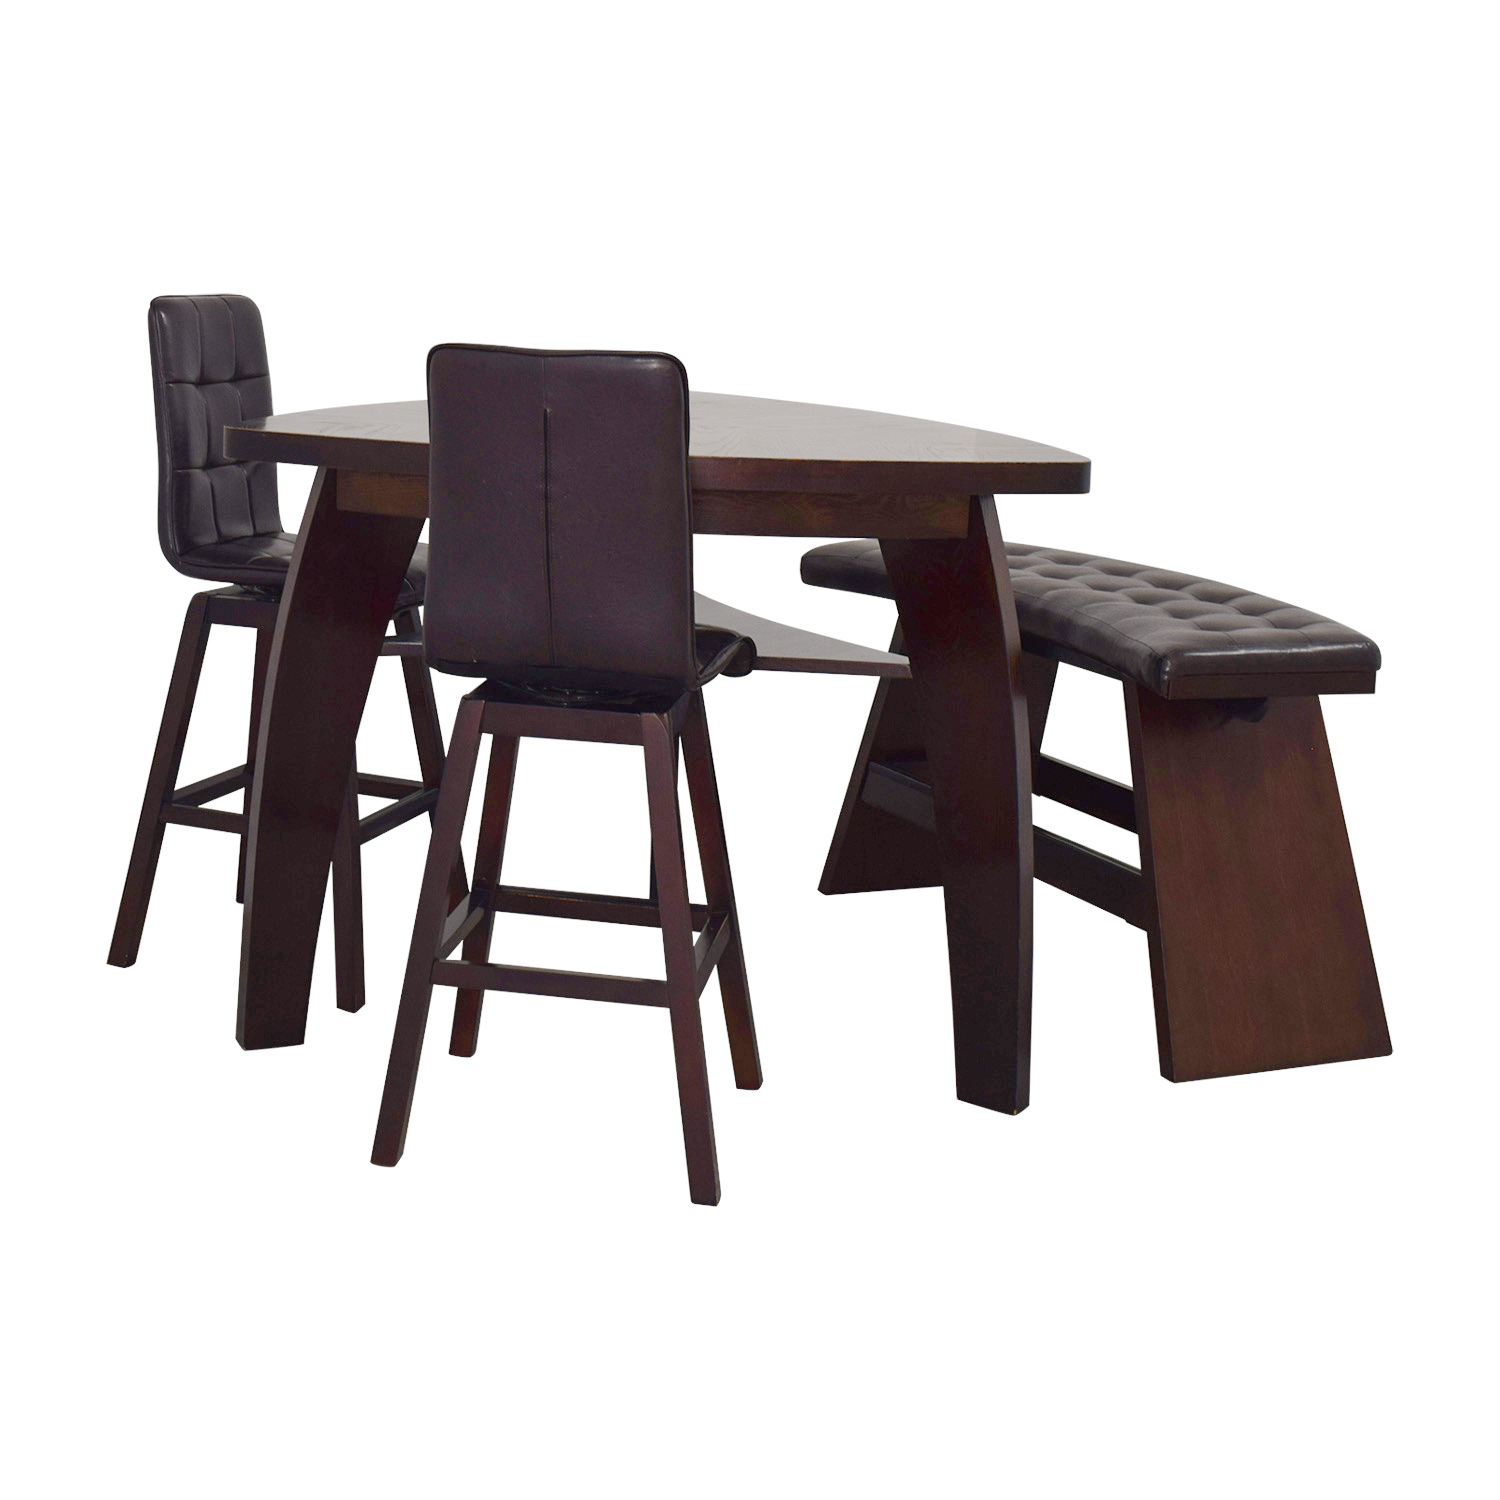 Awe Inspiring 76 Off Bobs Discount Furniture Bobs Furniture Boomerang Bar Stool And Bench Set Tables Home Interior And Landscaping Ponolsignezvosmurscom